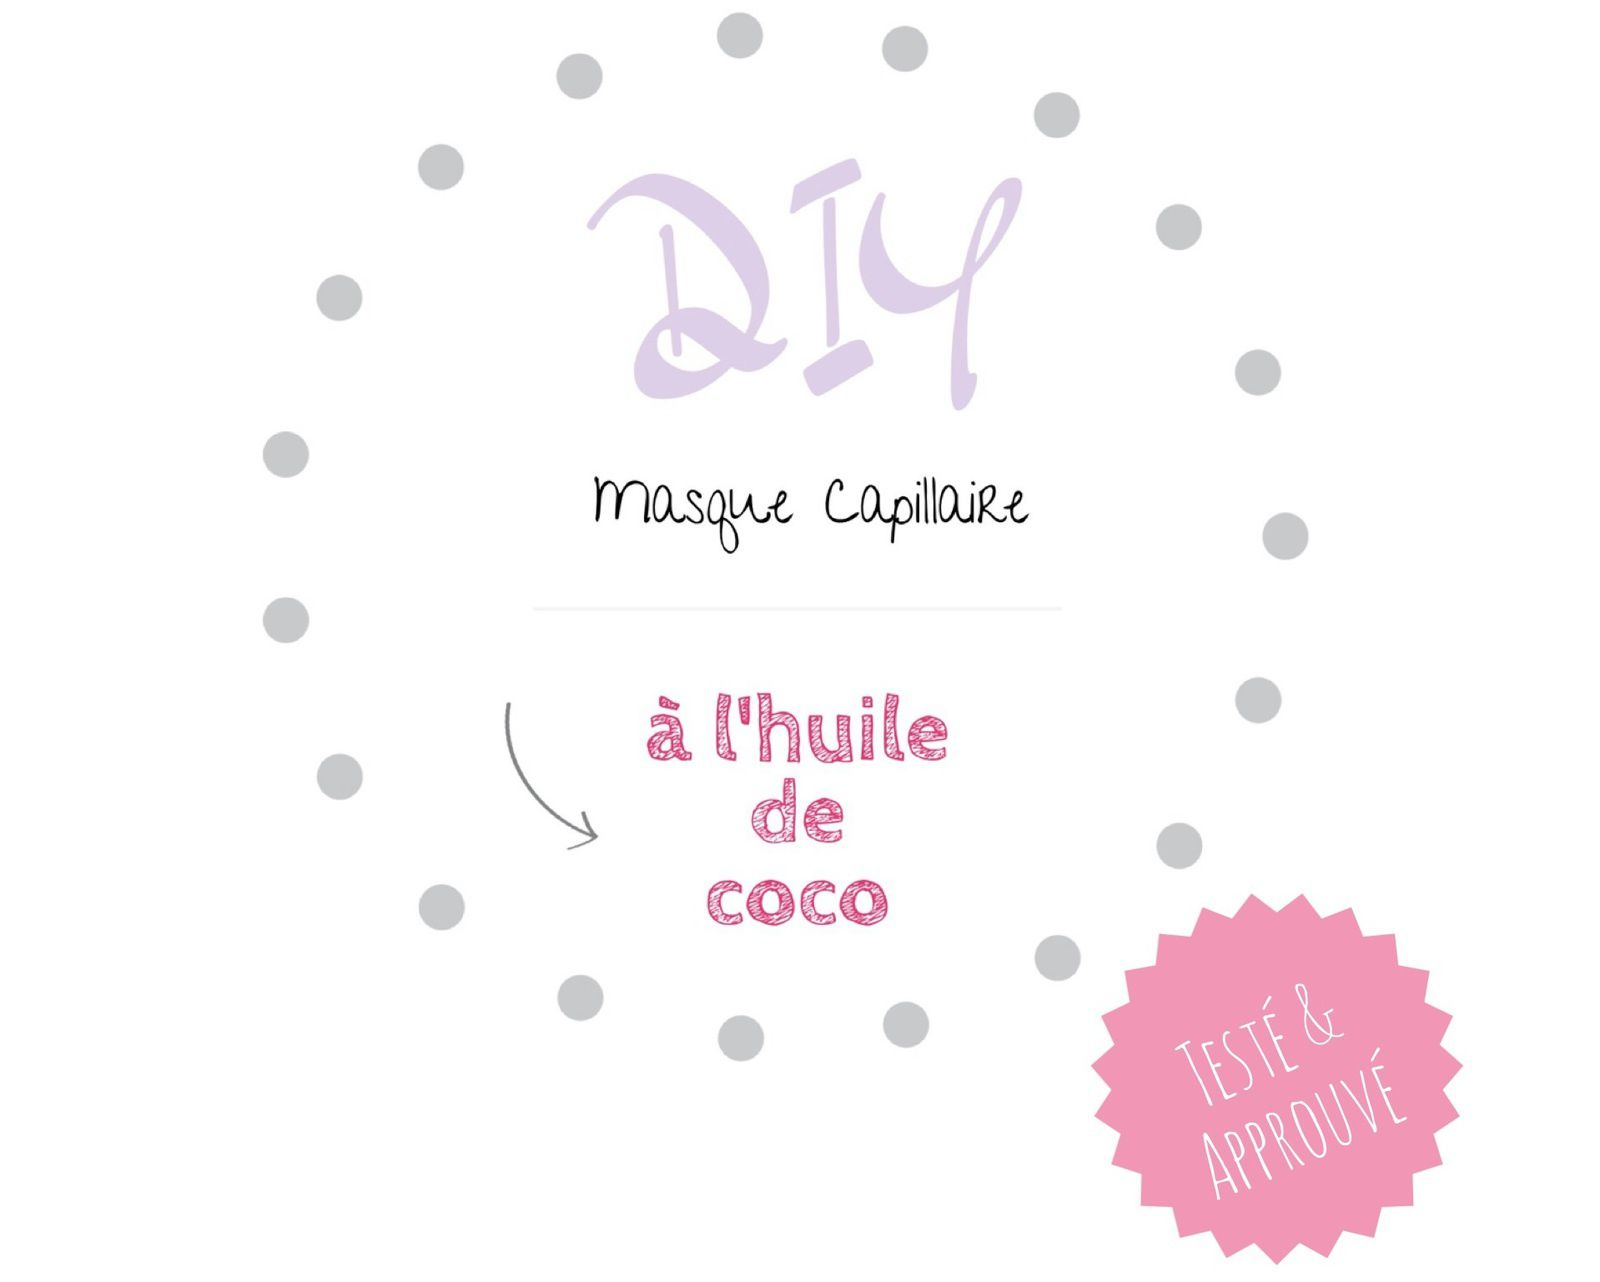 diy masque capillaire home made l 39 huile de coco. Black Bedroom Furniture Sets. Home Design Ideas